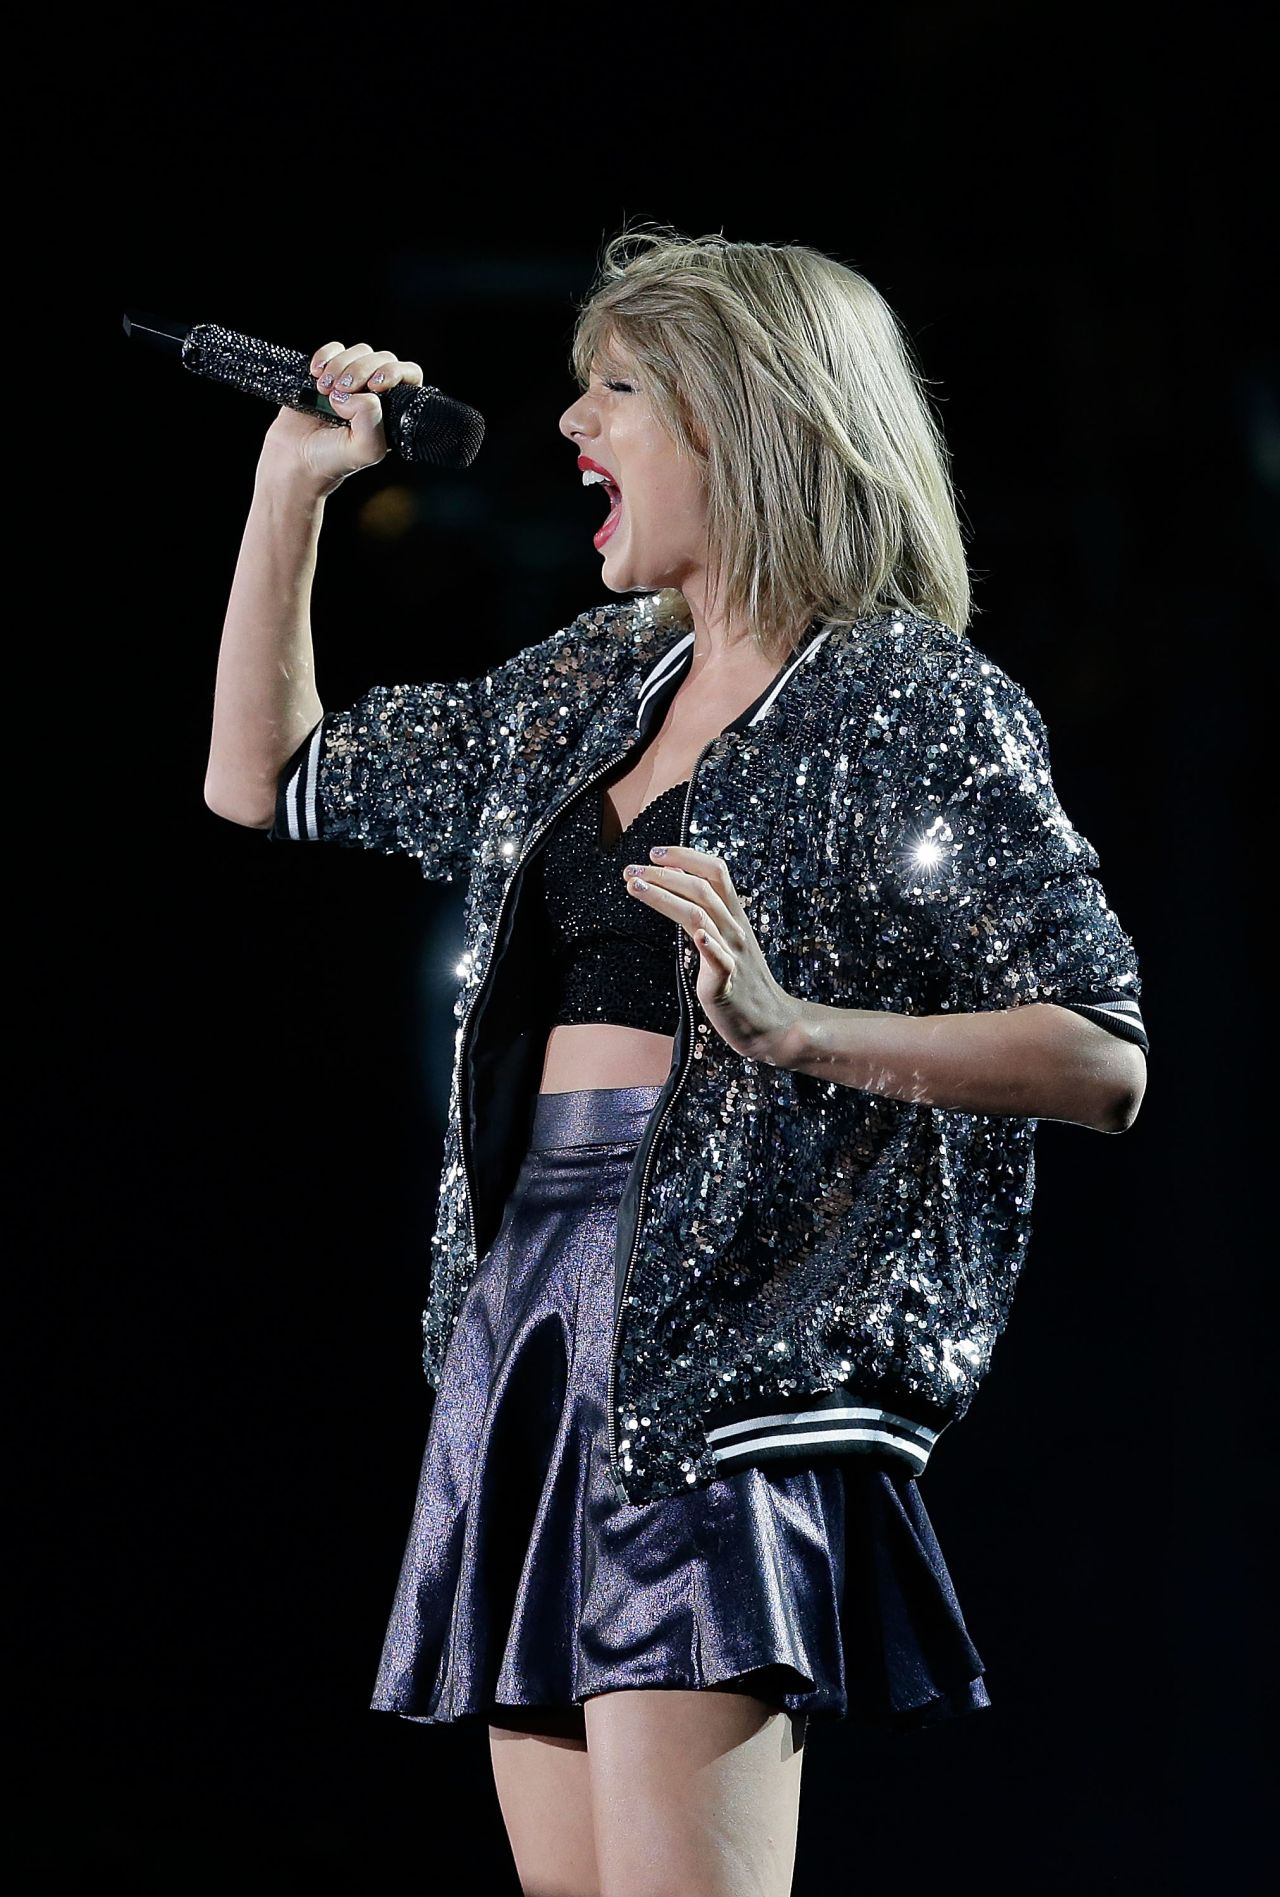 Taylor Swift Performs At 1989 World Tour In Sydney 11 28